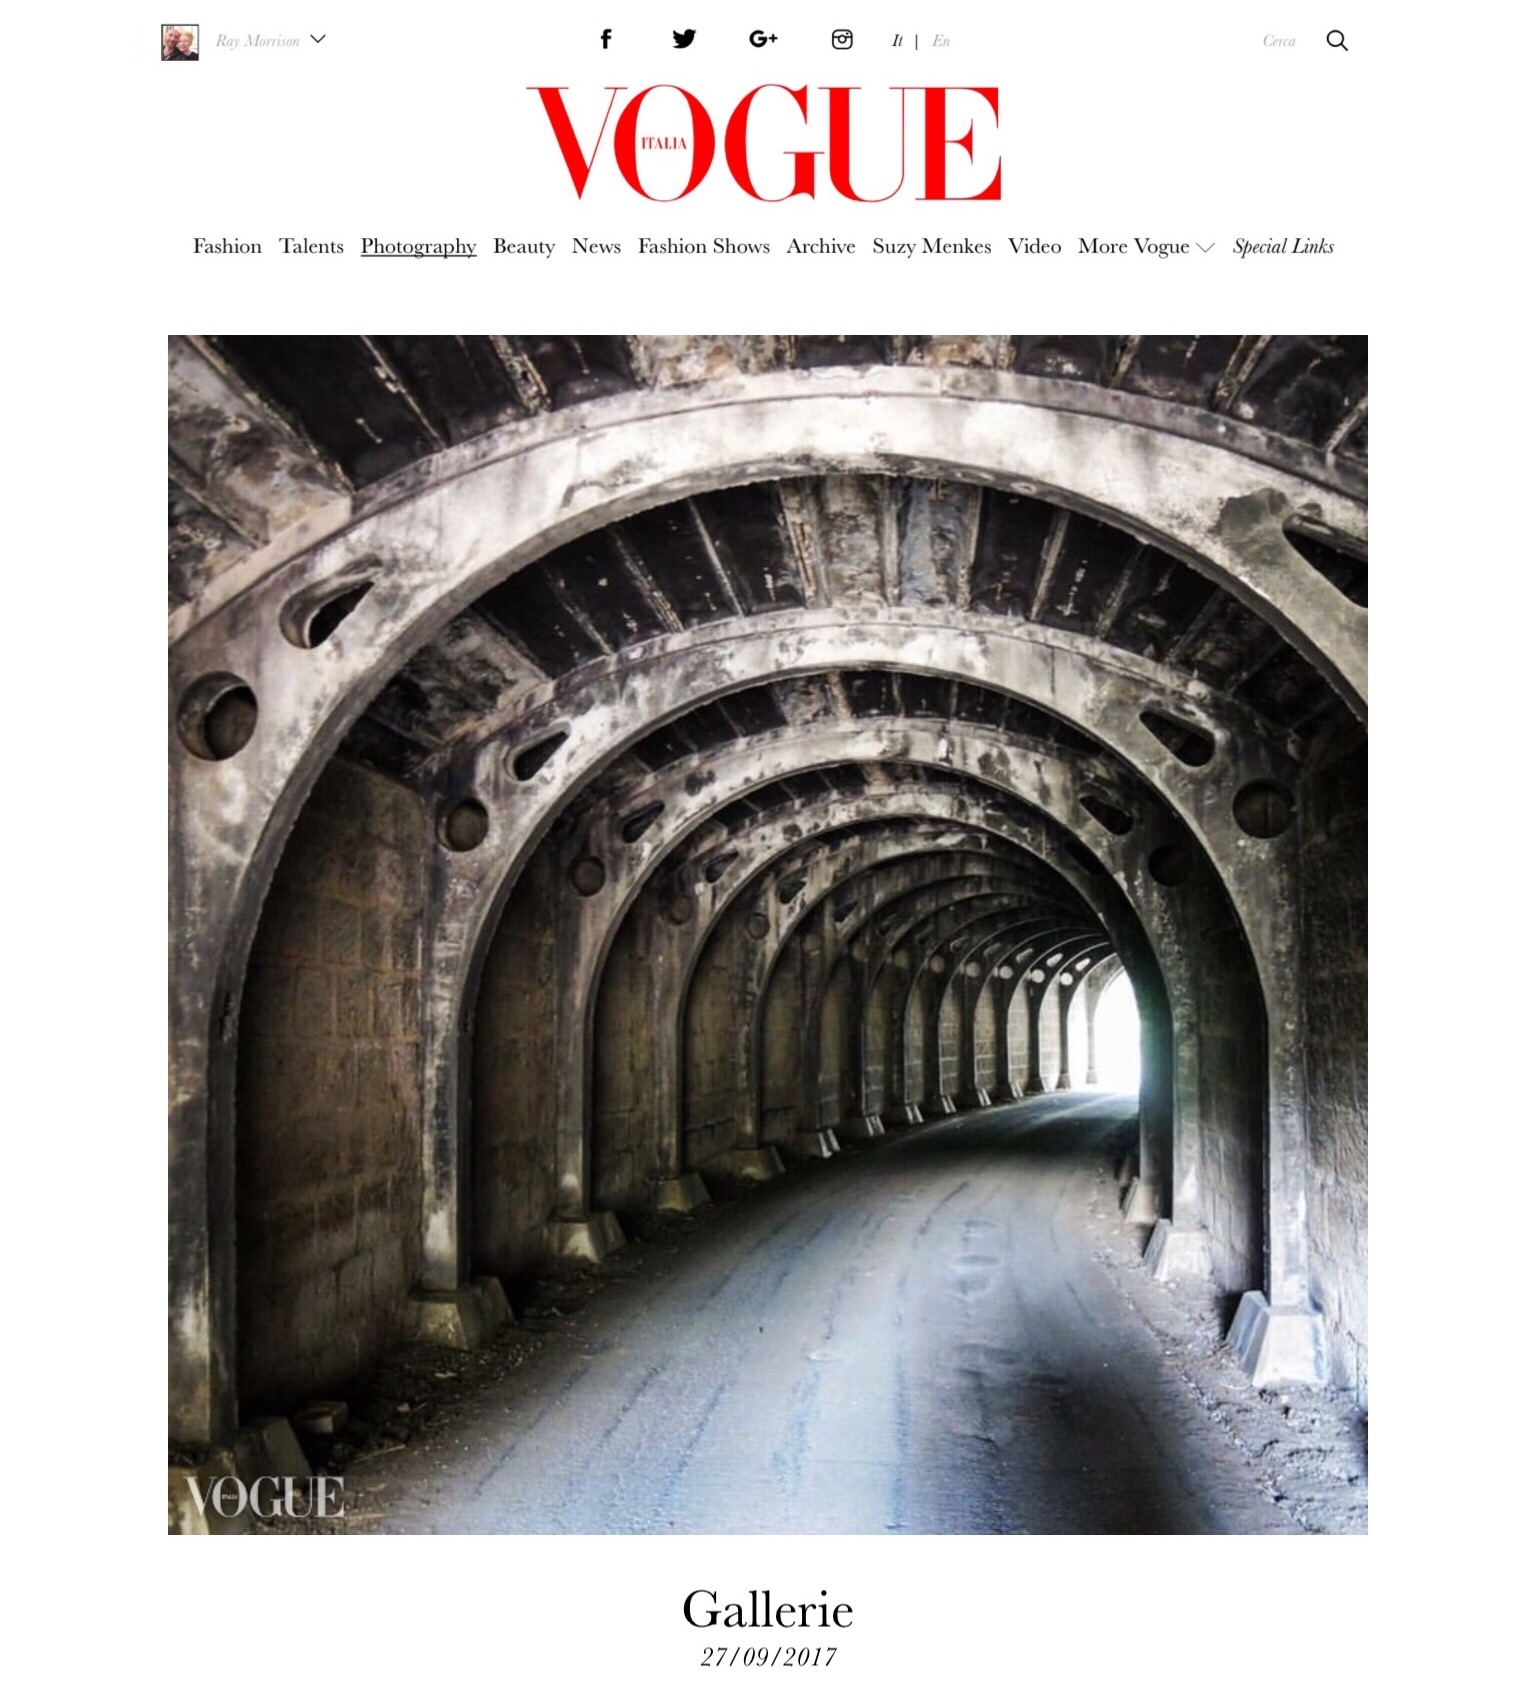 Tunnels in Photovogue